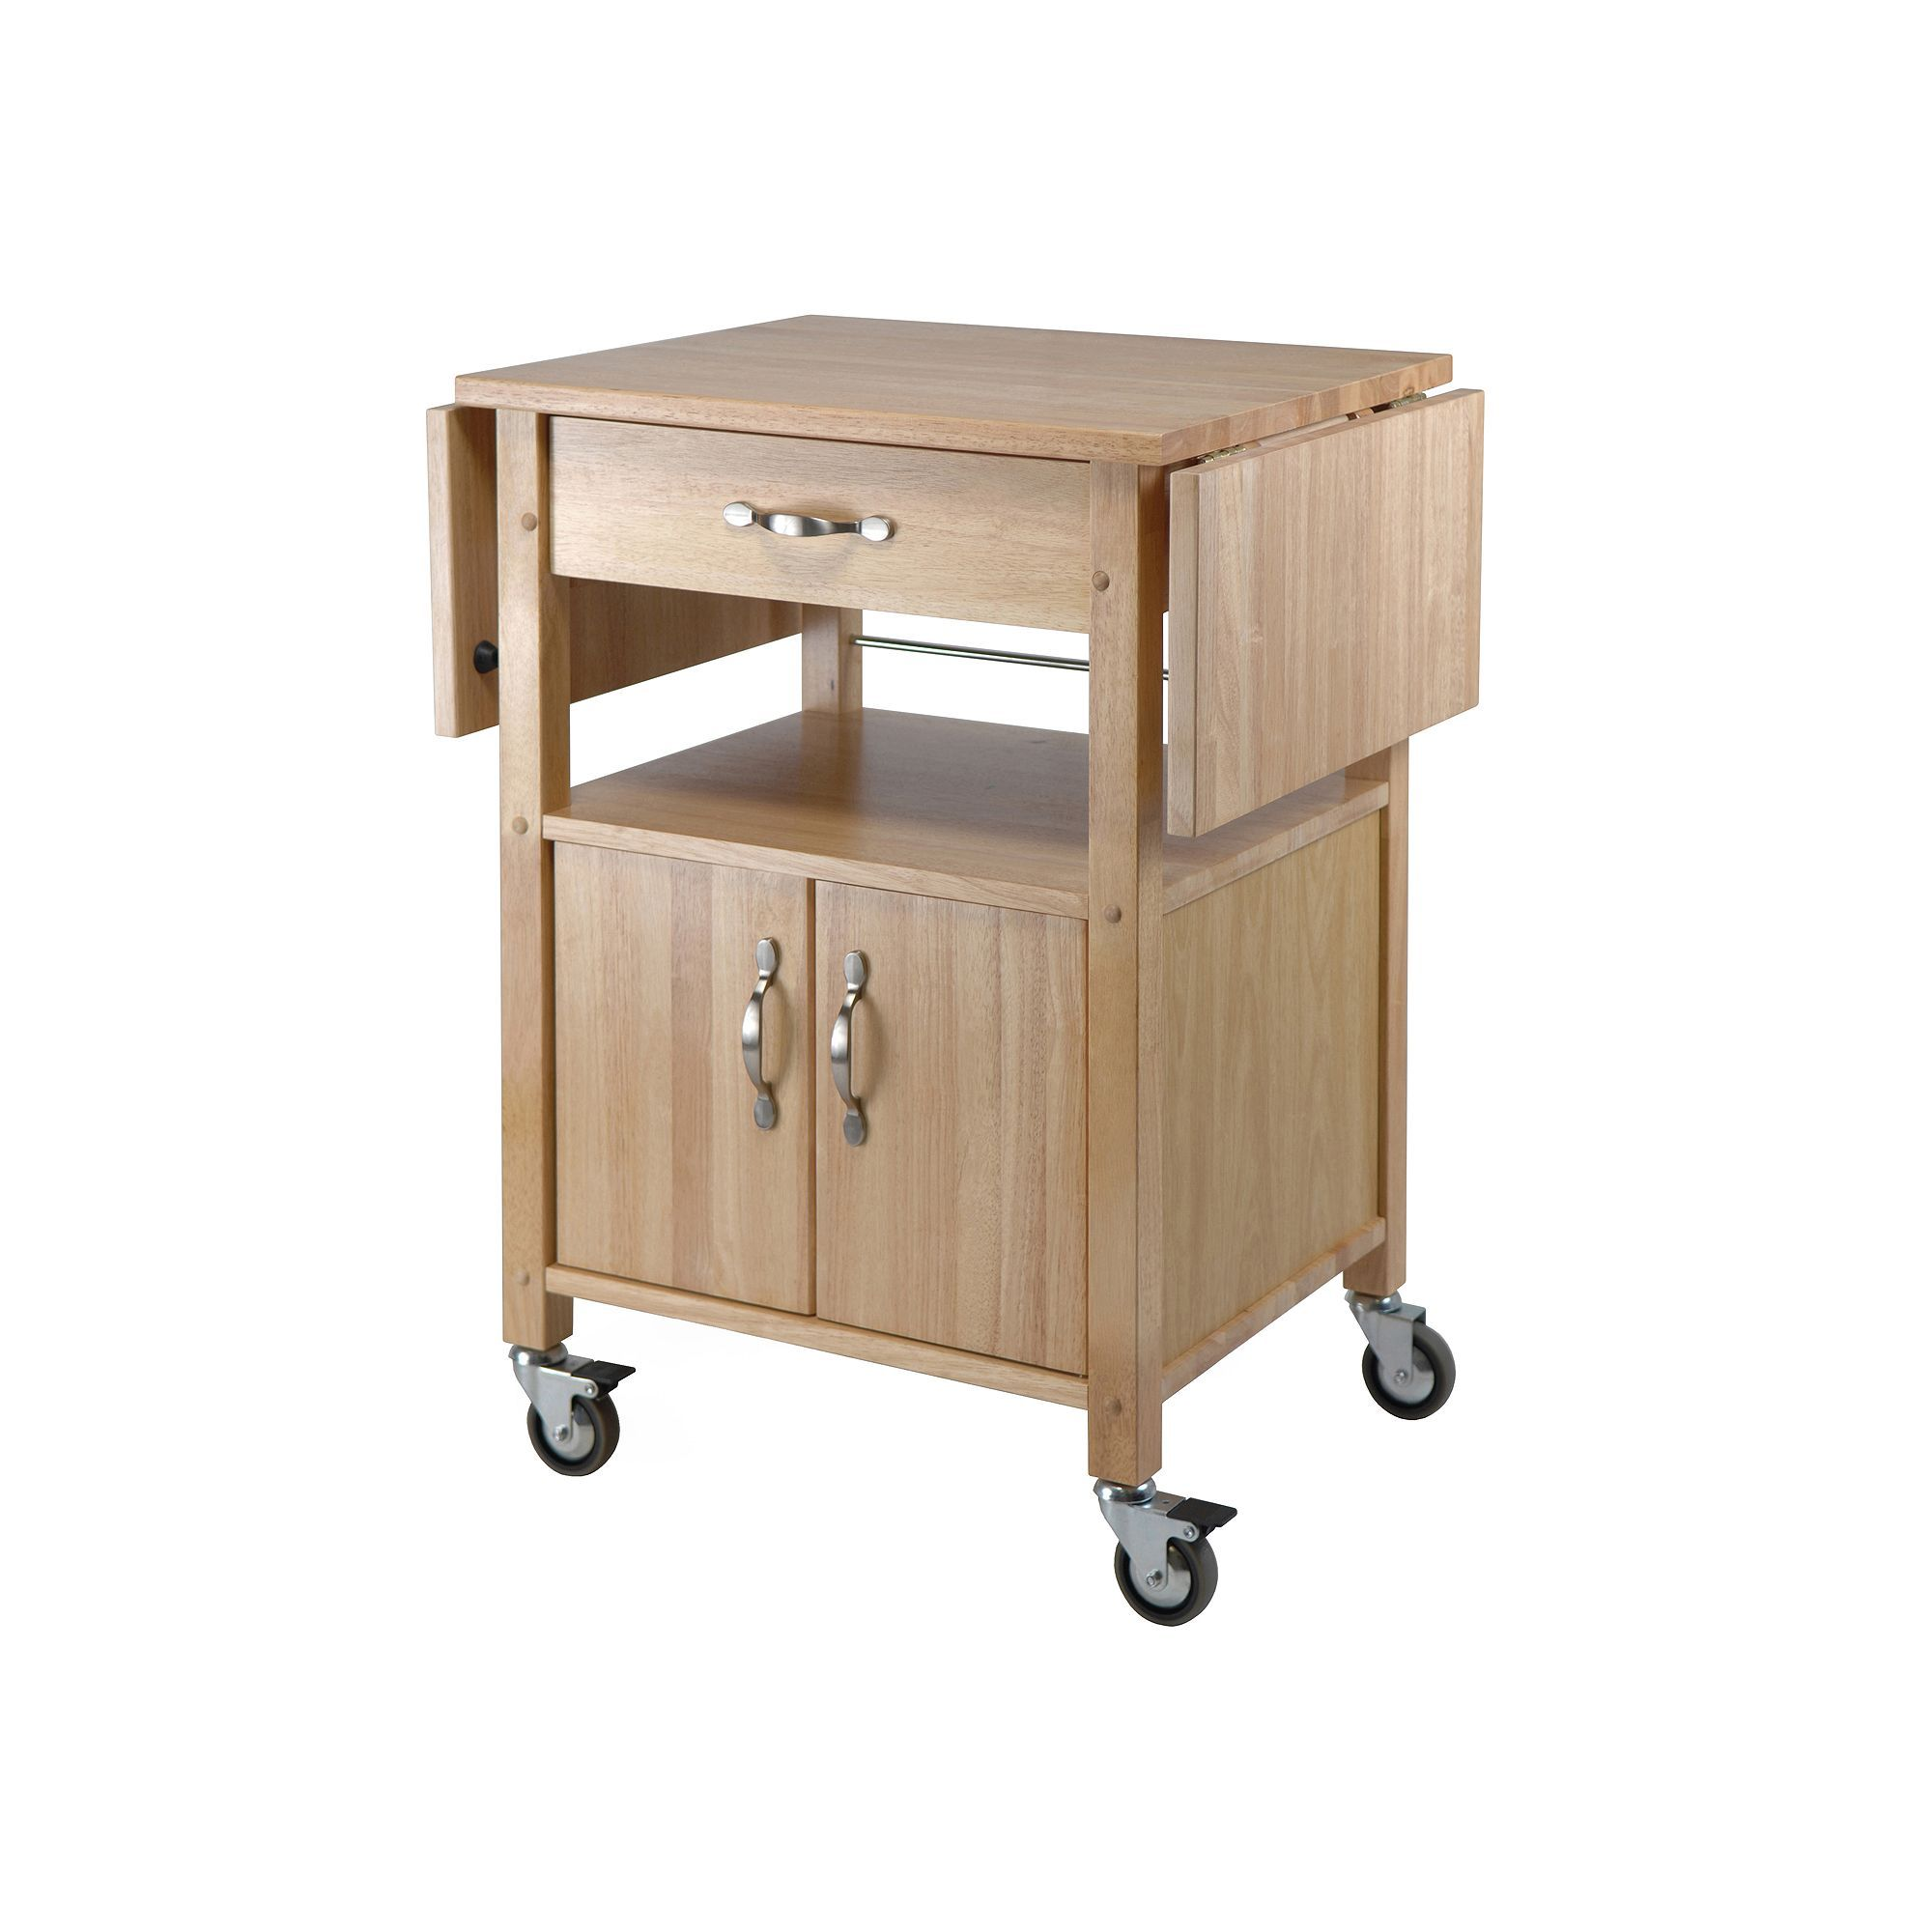 Winsome Dropleaf Kitchen Cart  Kitchen Carts Leaves And Drop Brilliant Kitchen Cart With Drop Leaf Inspiration